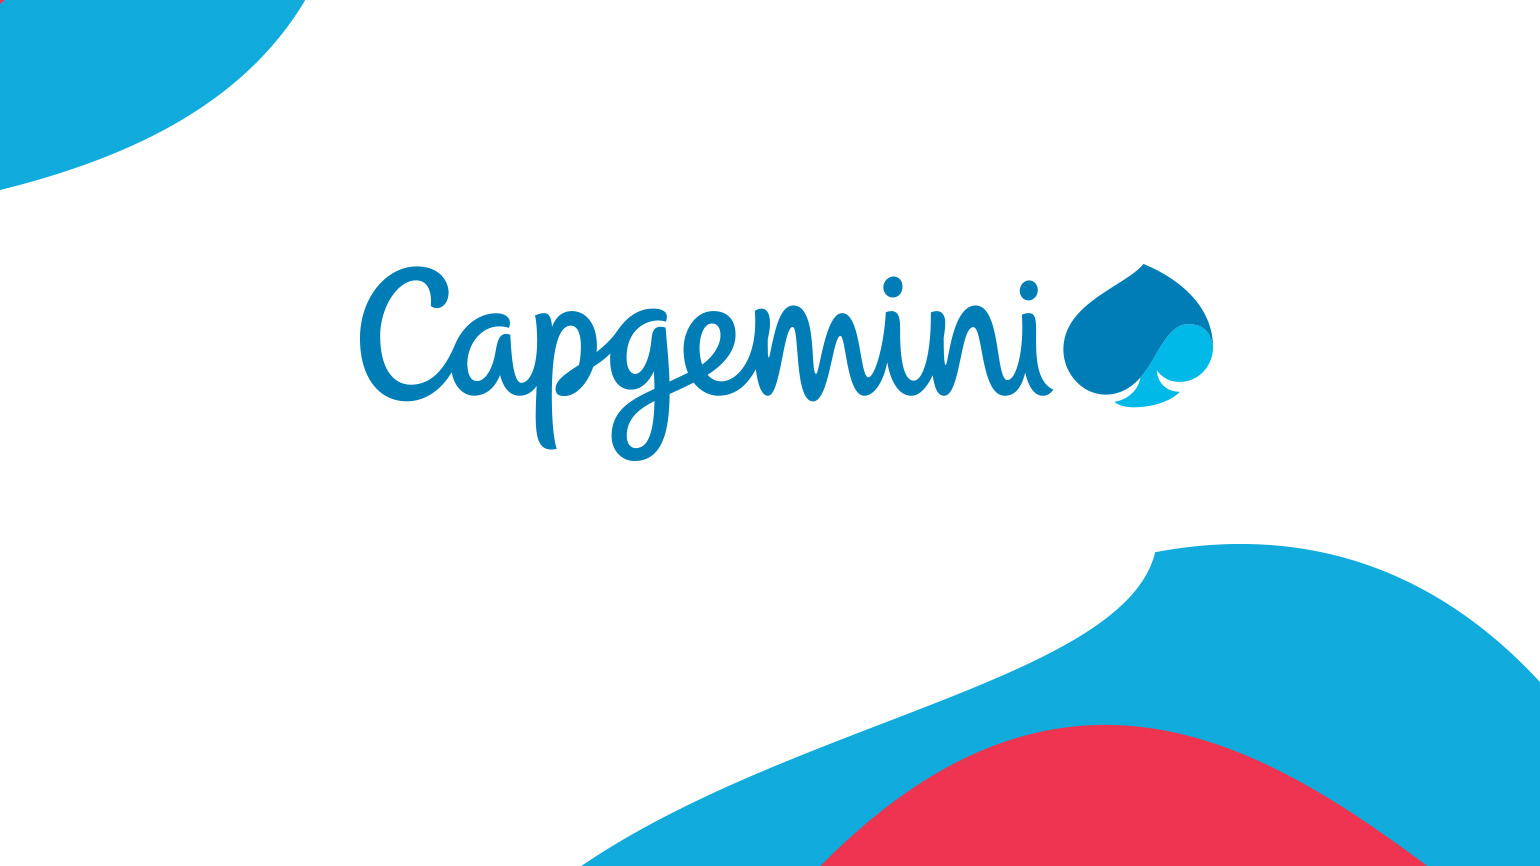 Capgemini announces appointment of Patrick Nicolet to Group Chief Technology Officer